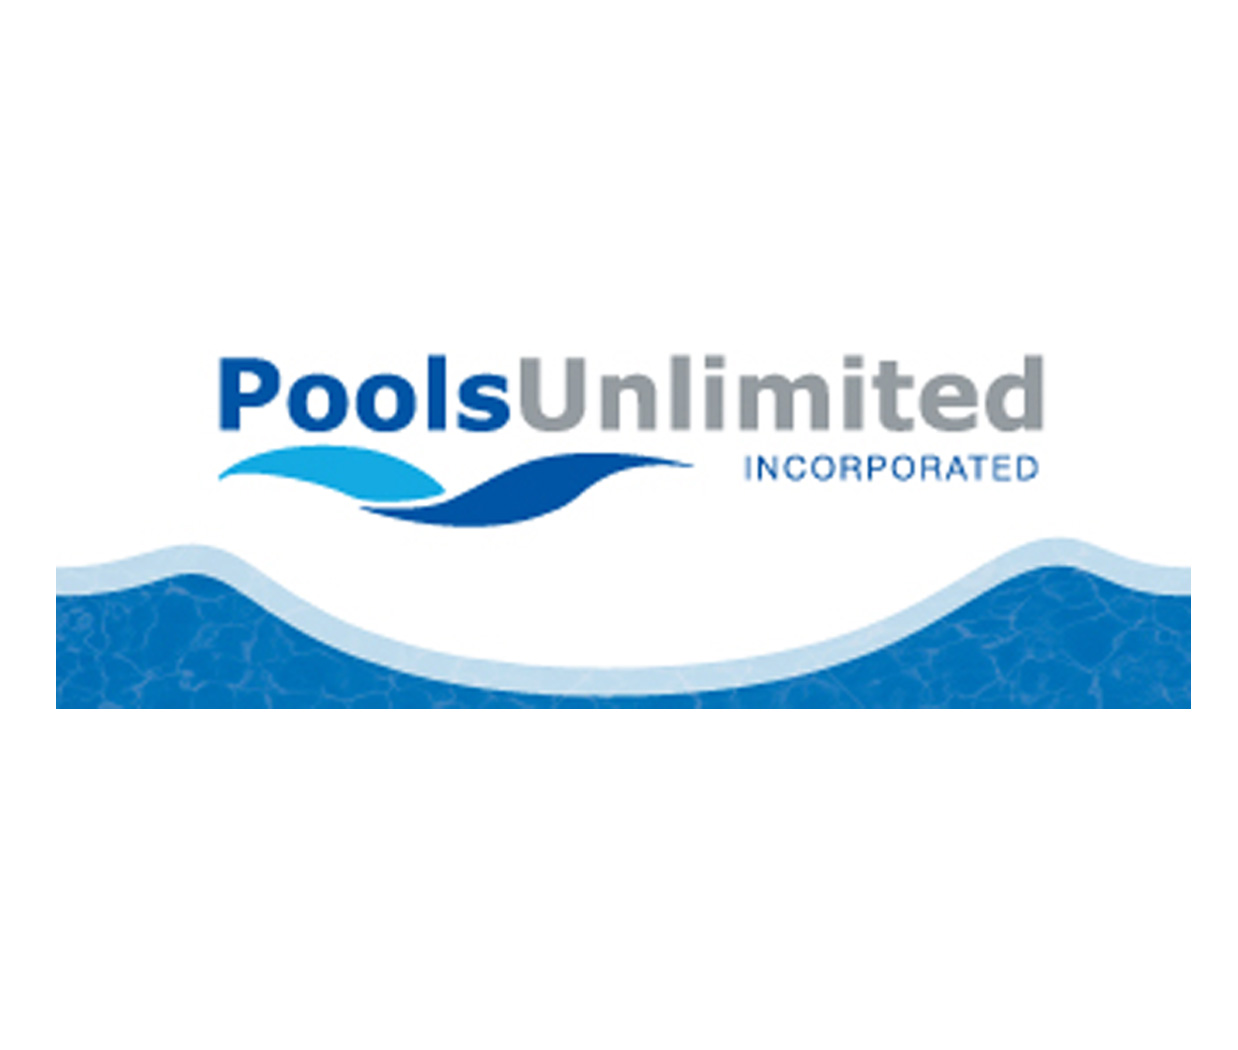 Pools Unlimited